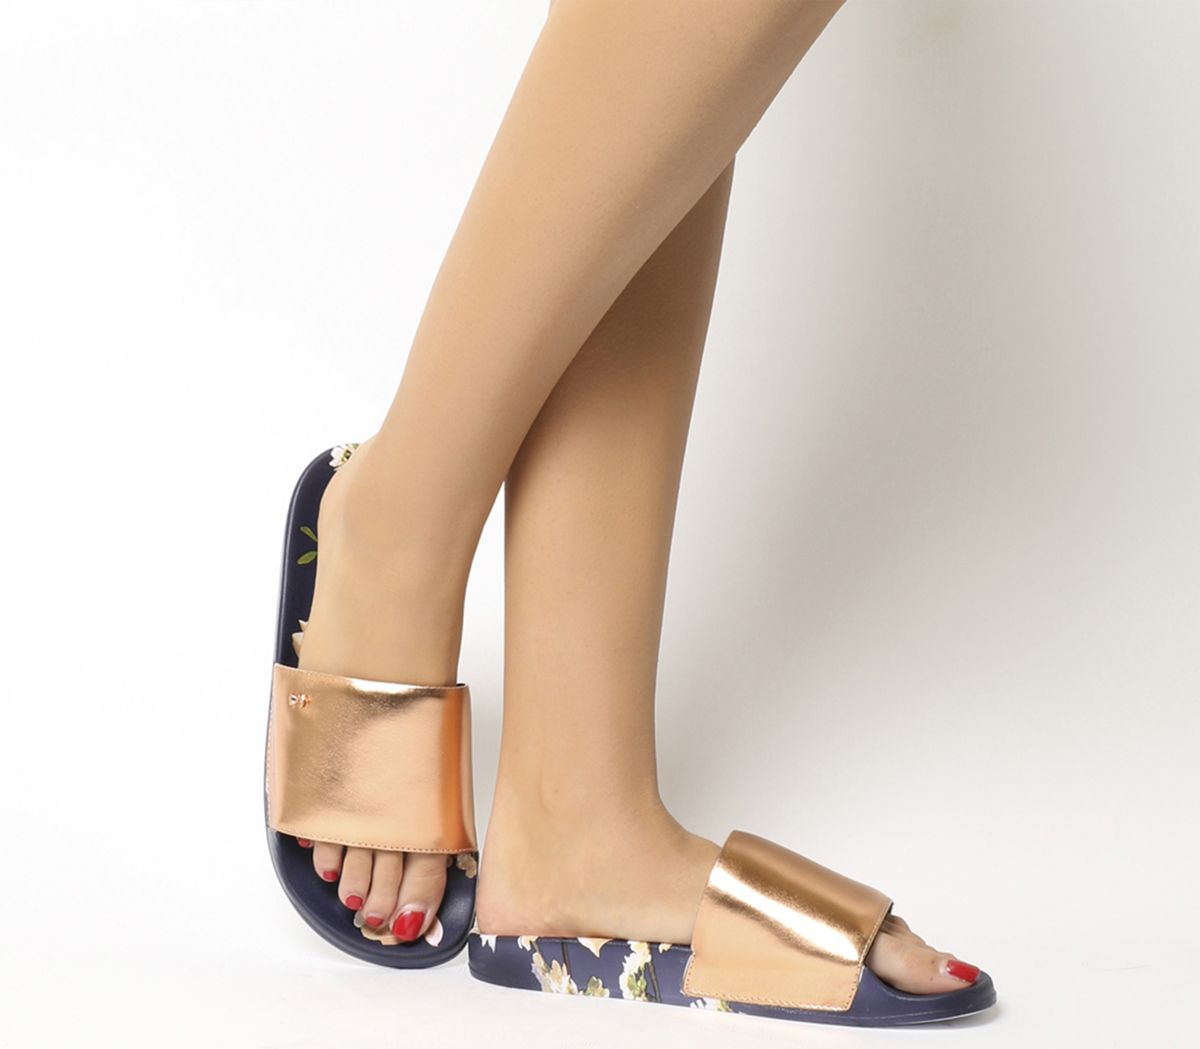 31ea036b0 Sentinel Womens Ted Baker Navy Blue Synthetic Slip On Sandals Size UK 6  Ex- Display